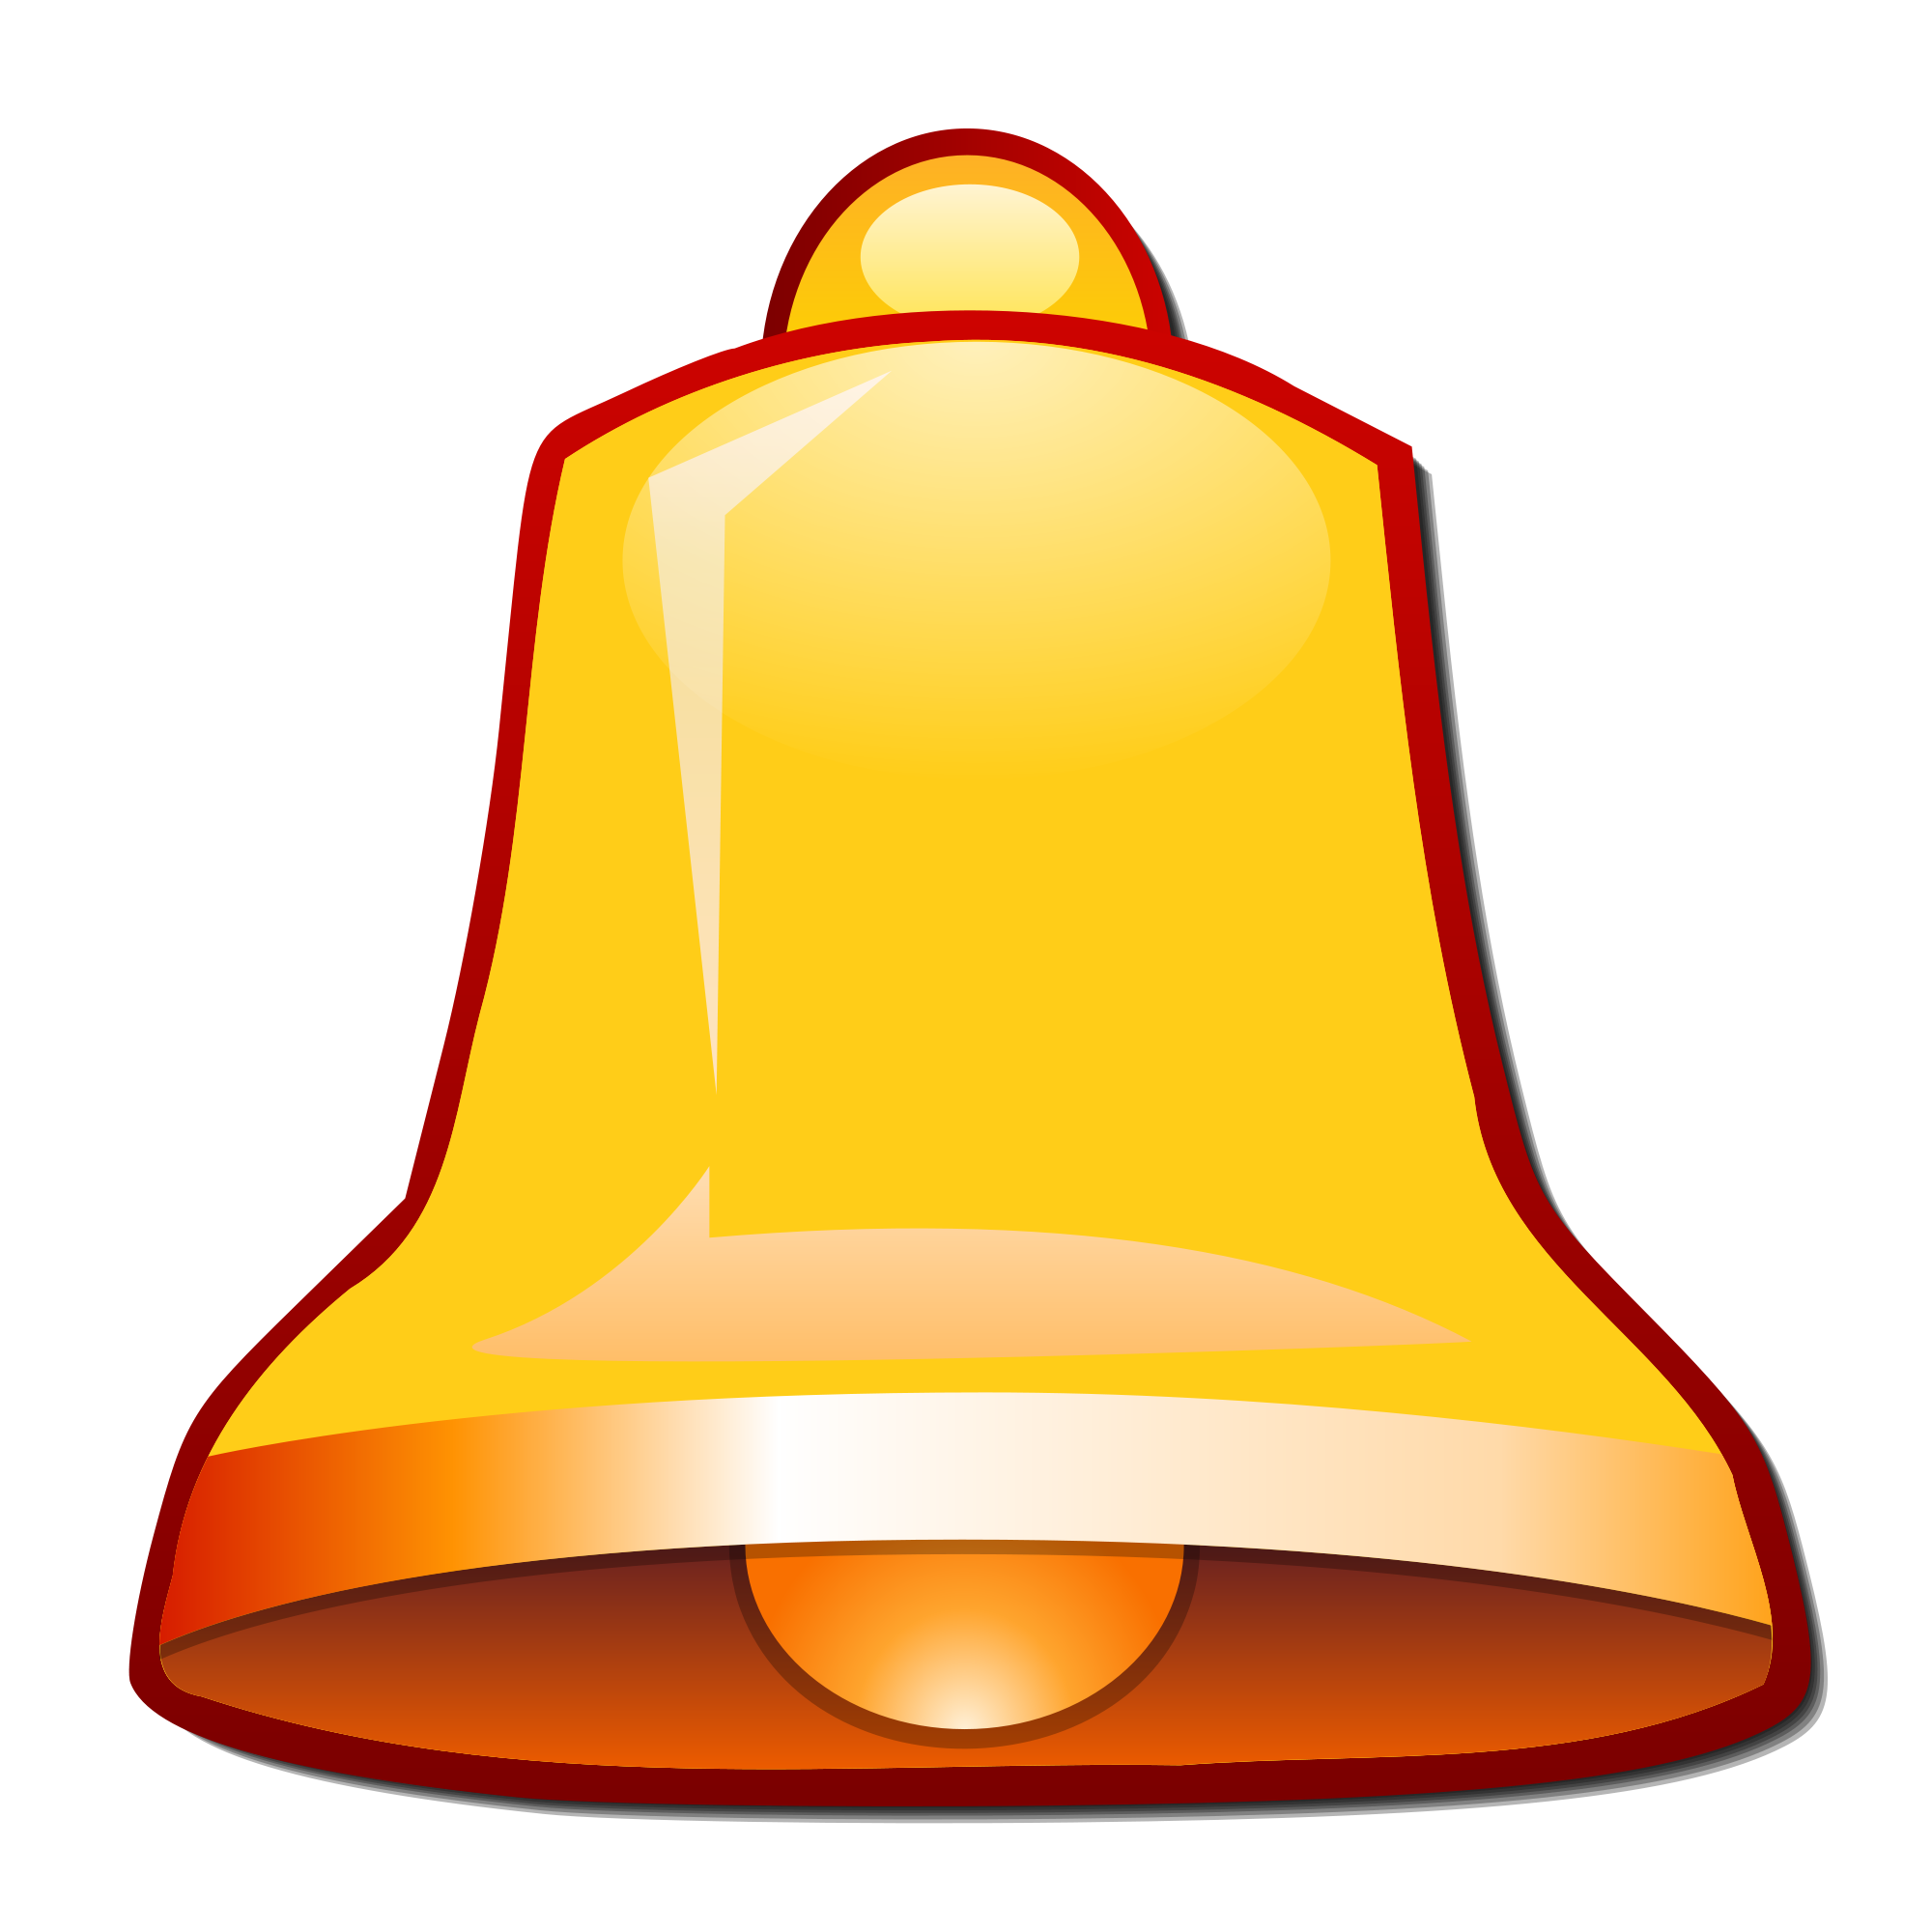 Bell clip art images free clipart 2.